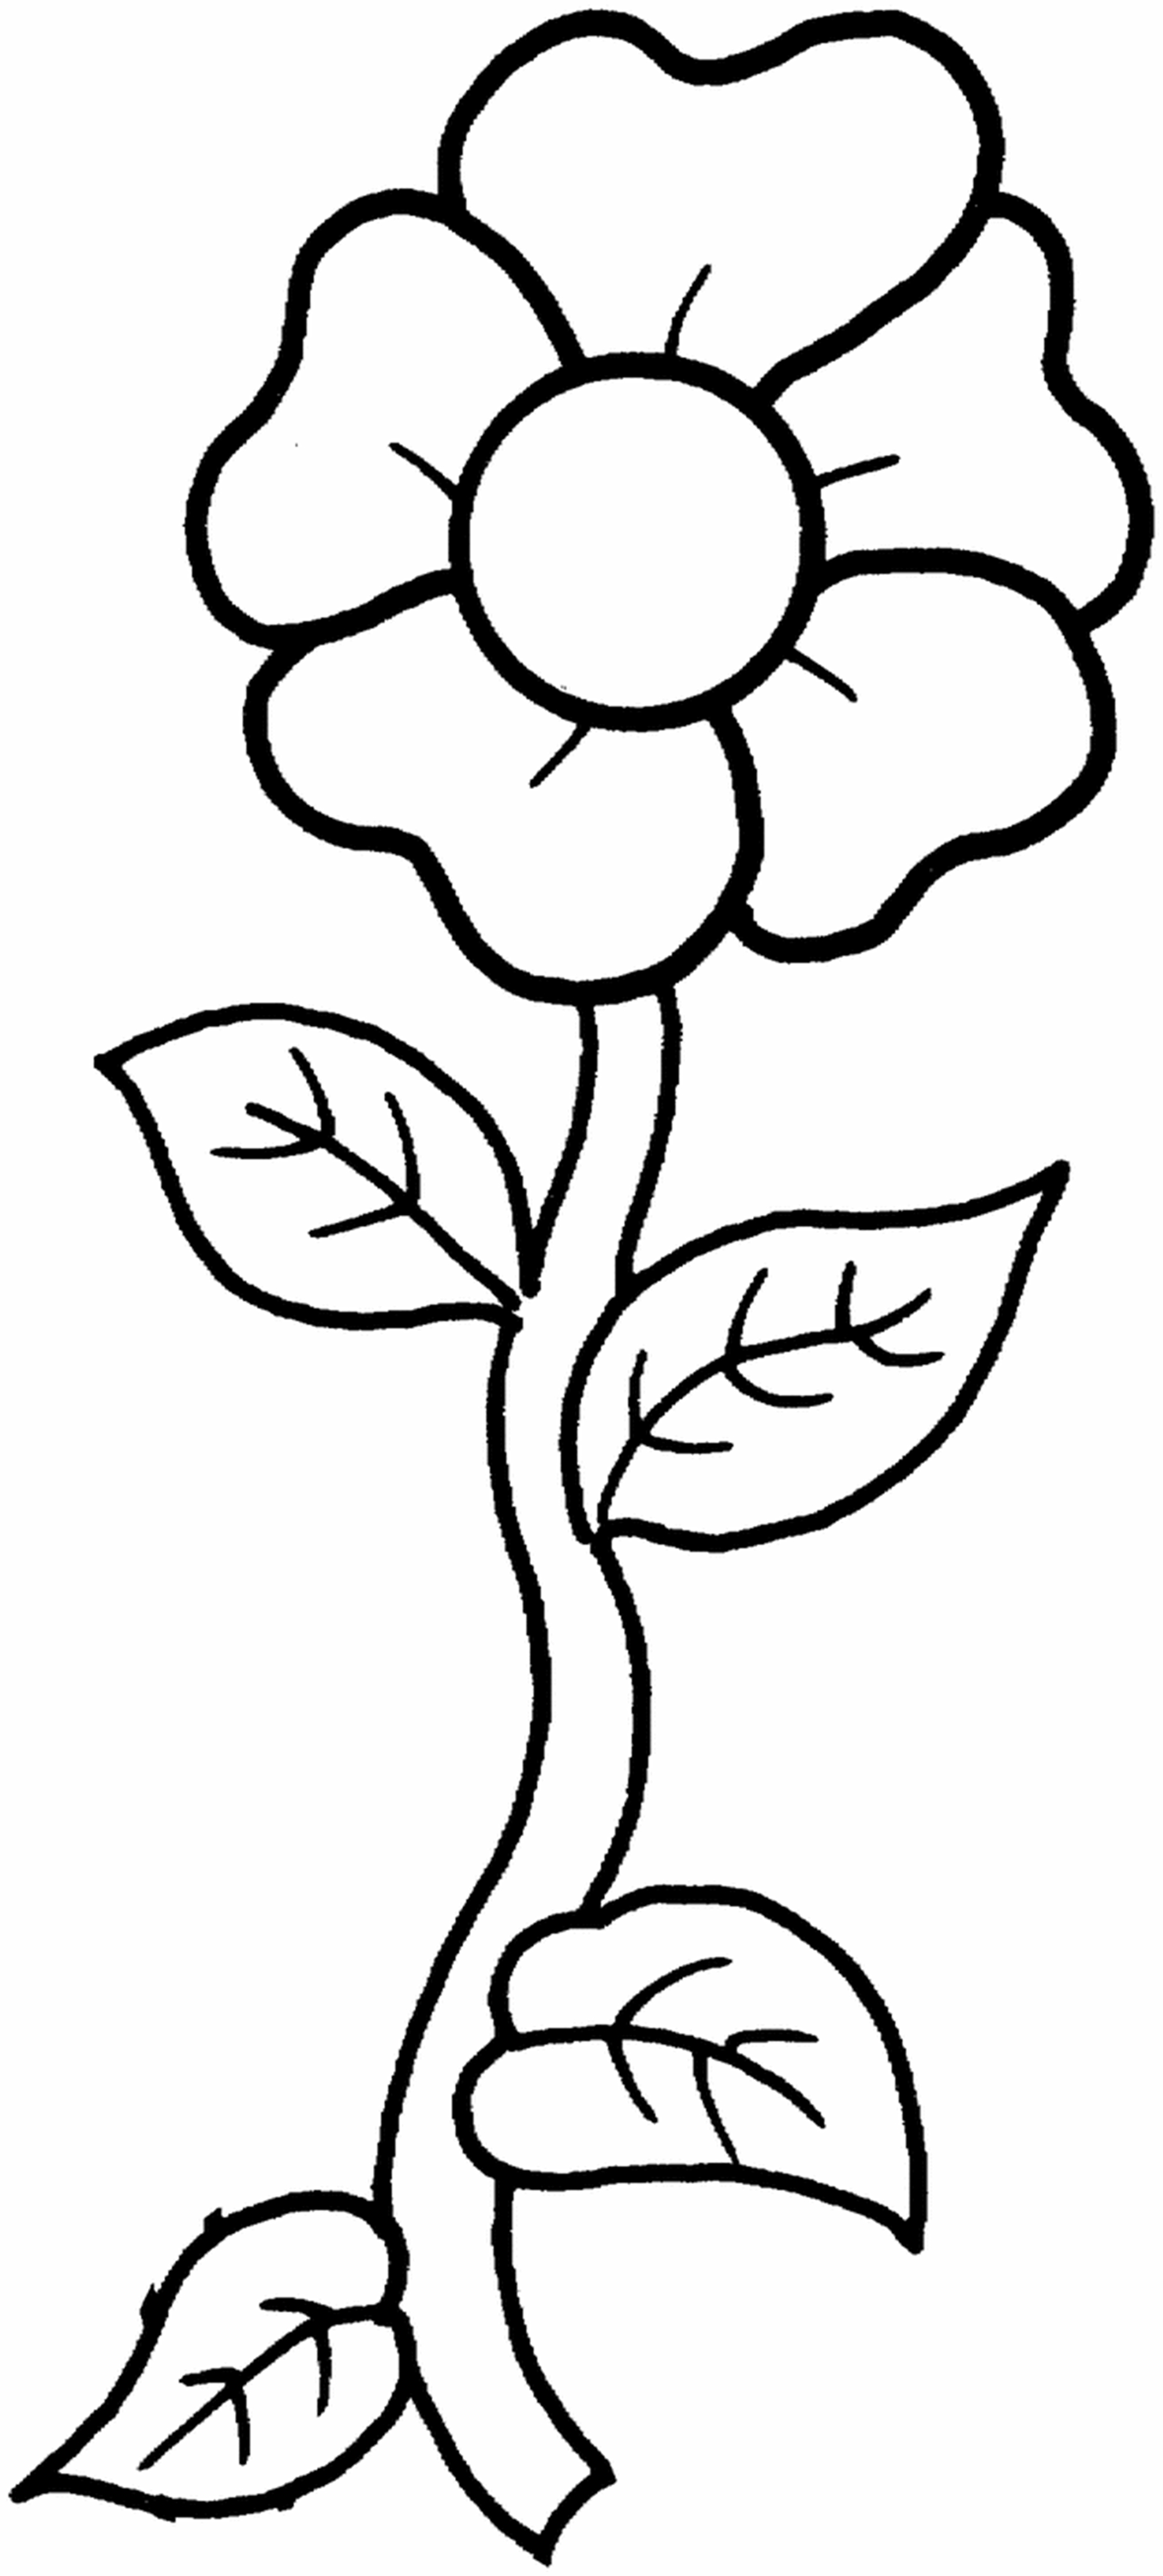 coloring pages flowers summer flowers printable coloring pages free large images coloring pages flowers